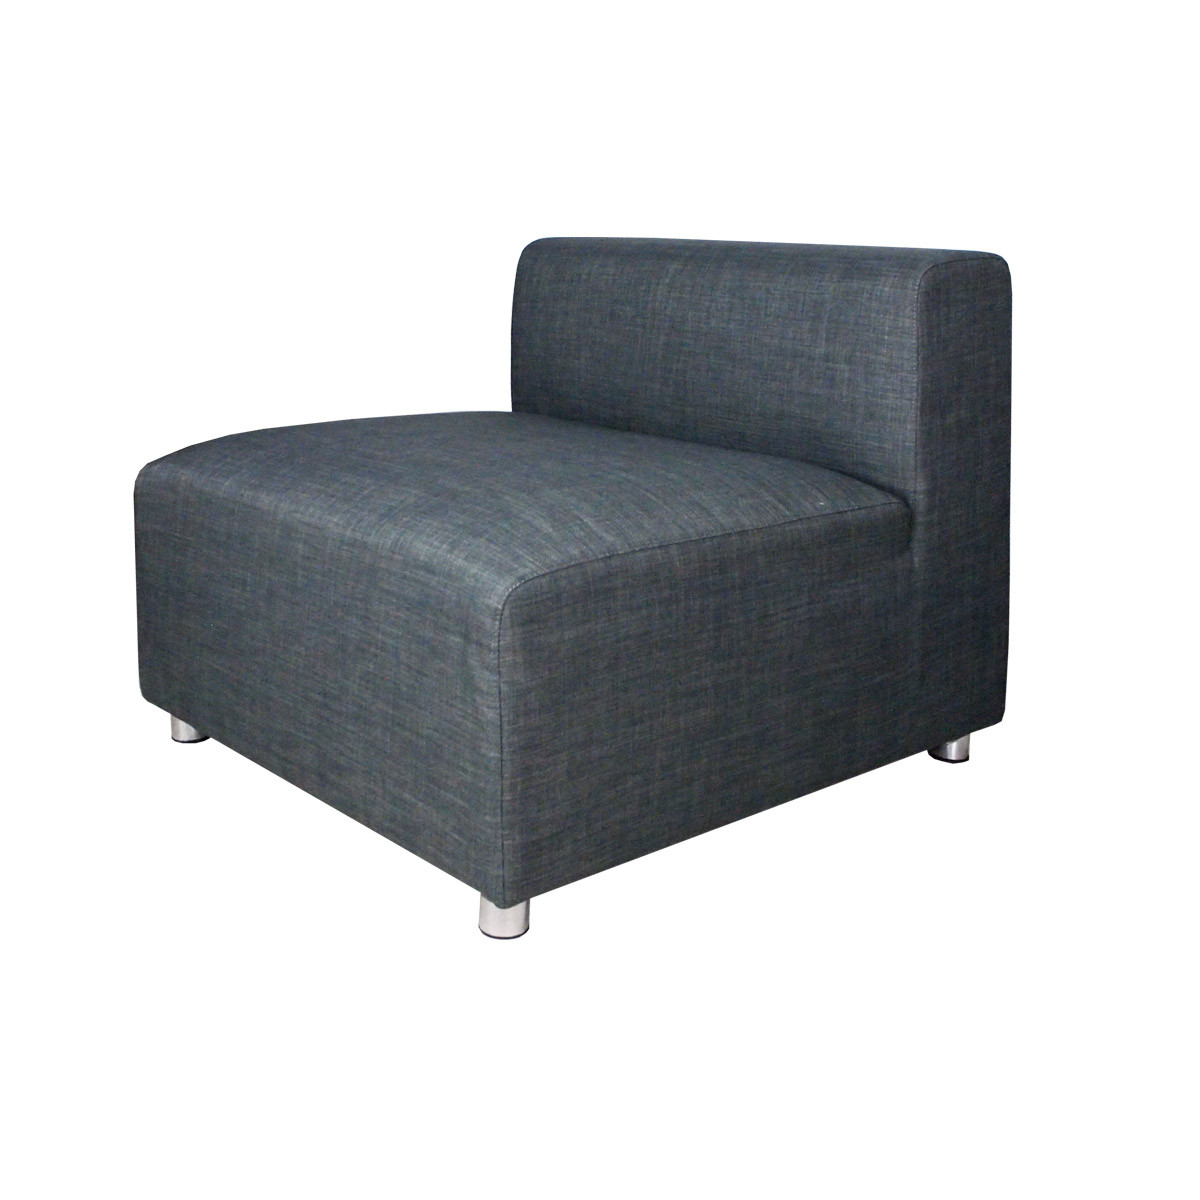 Sectional Sofa Sale Houston: Houston 4 Pieces Modular Sofa Grey